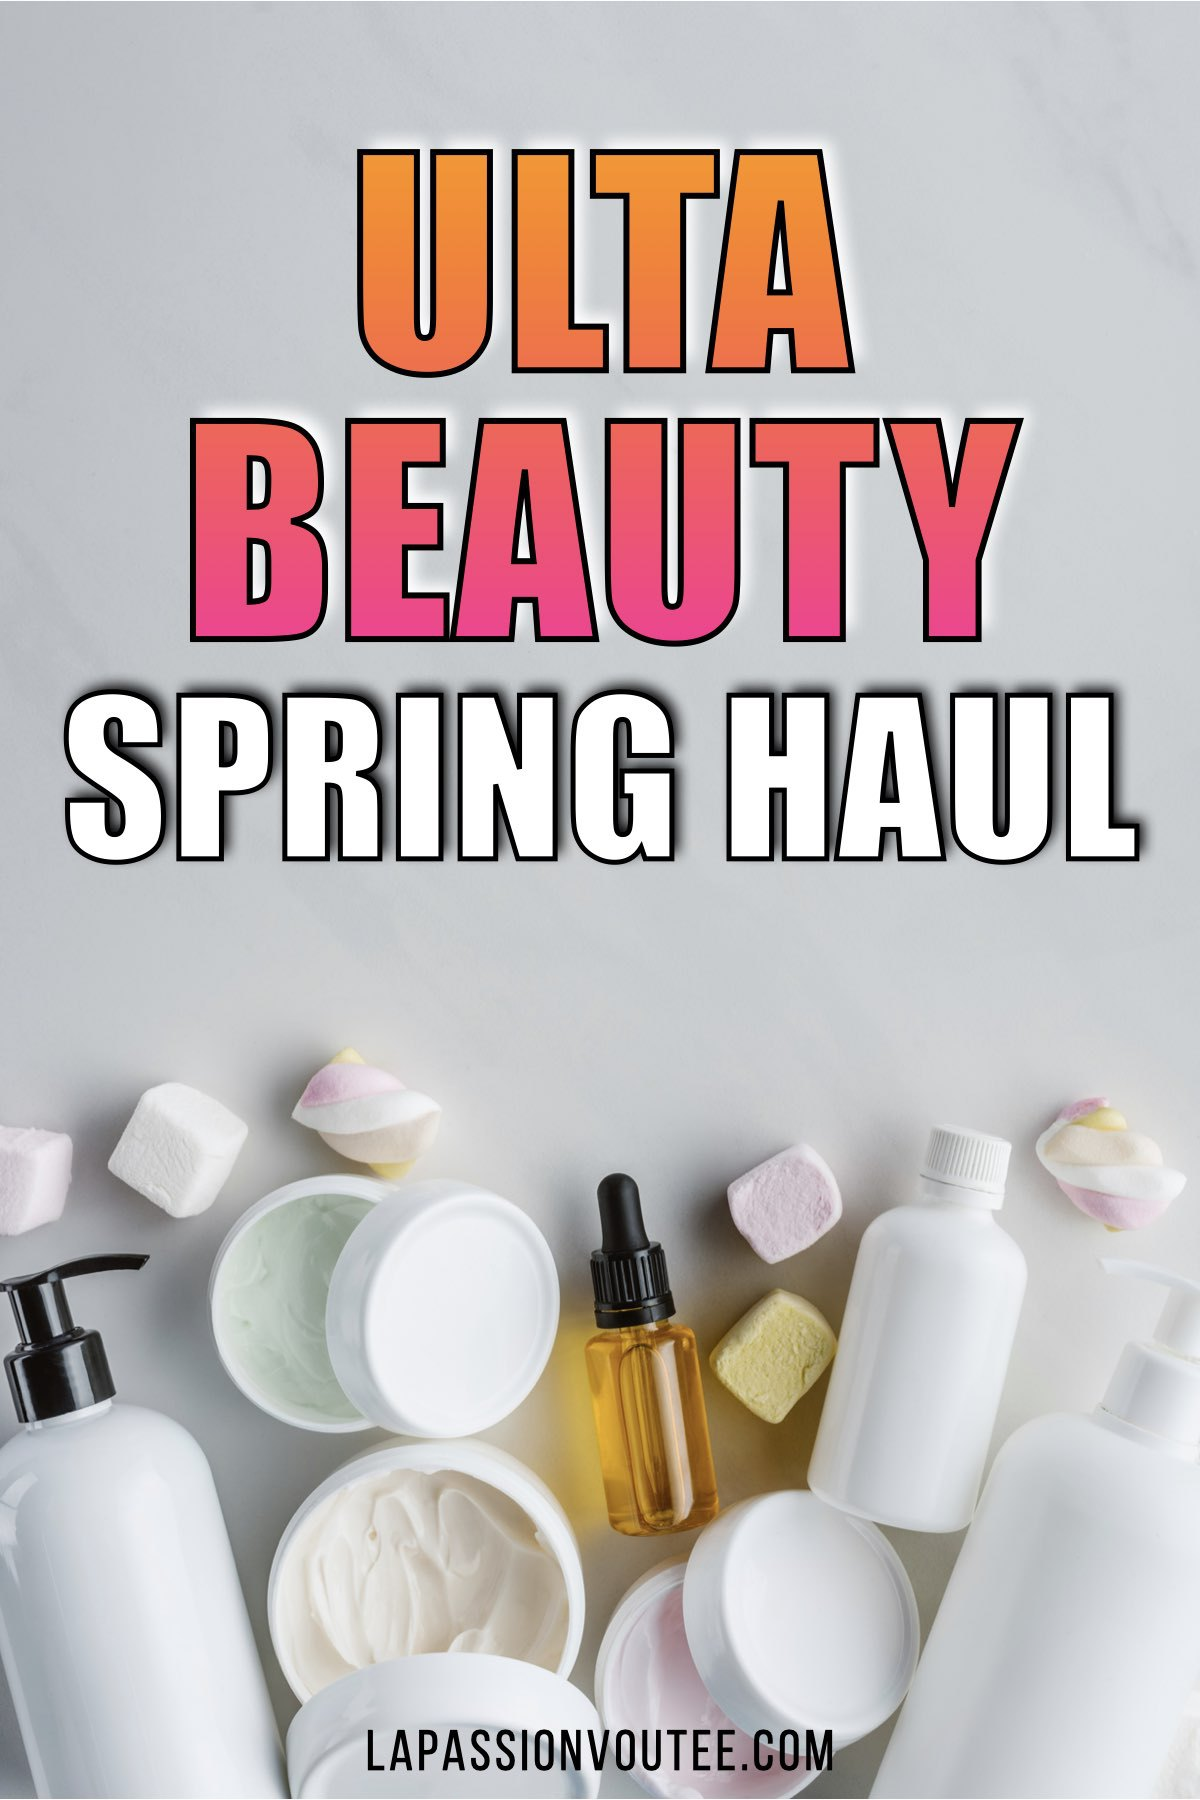 Now through April 18th, scoop up some of the biggest discount on everyday beauty products at up to 50% off during the 2020 Ulta Spring Haul. This crazy savings include the following top-selling brands: Nexxus, Ardell, Hempz, Thayers, Ecotools, Winky Lux, and Physicians Formula.